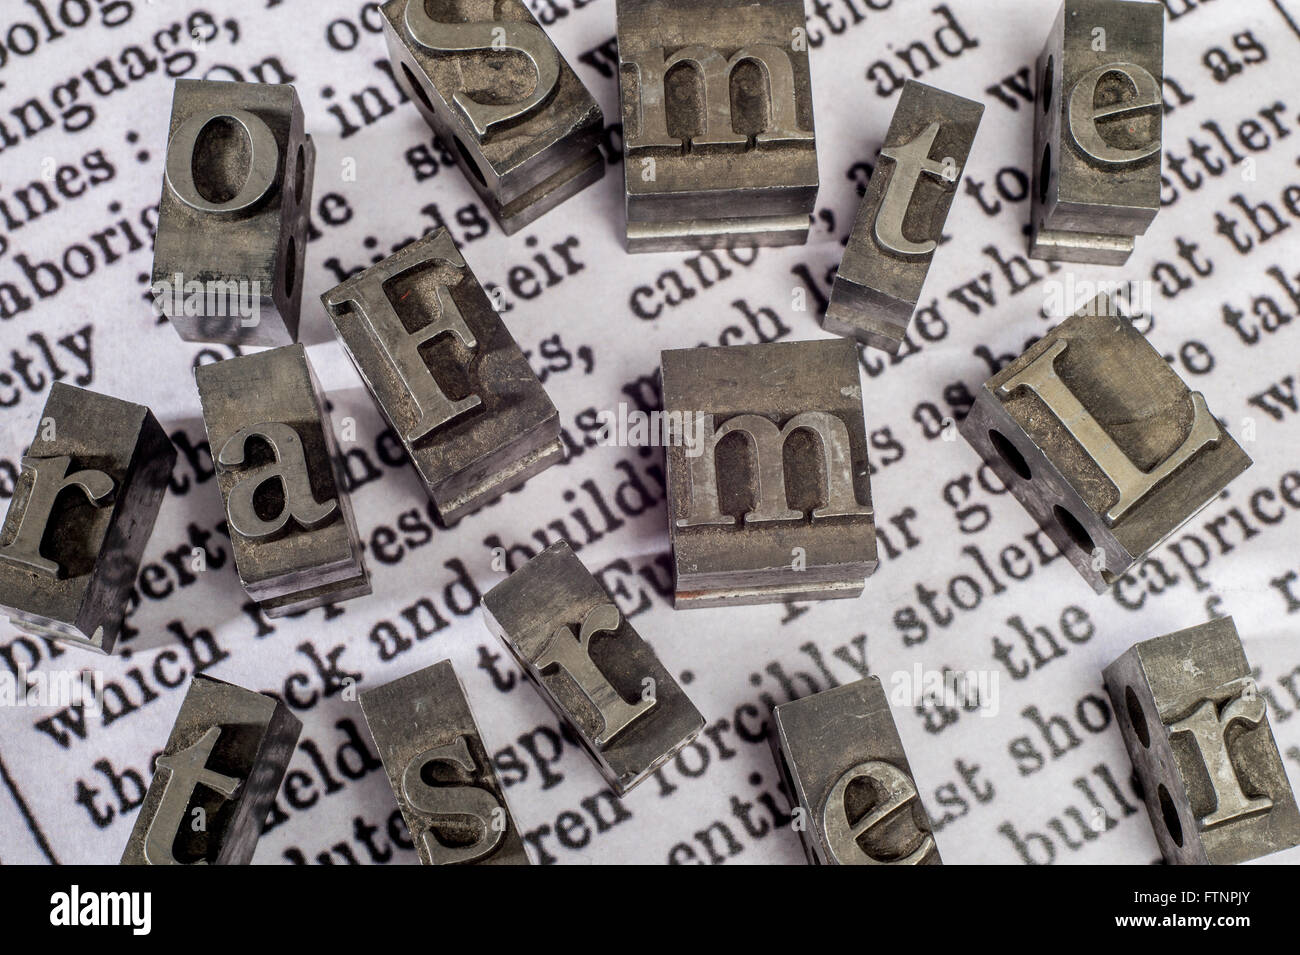 printing press block letters on newspaper print